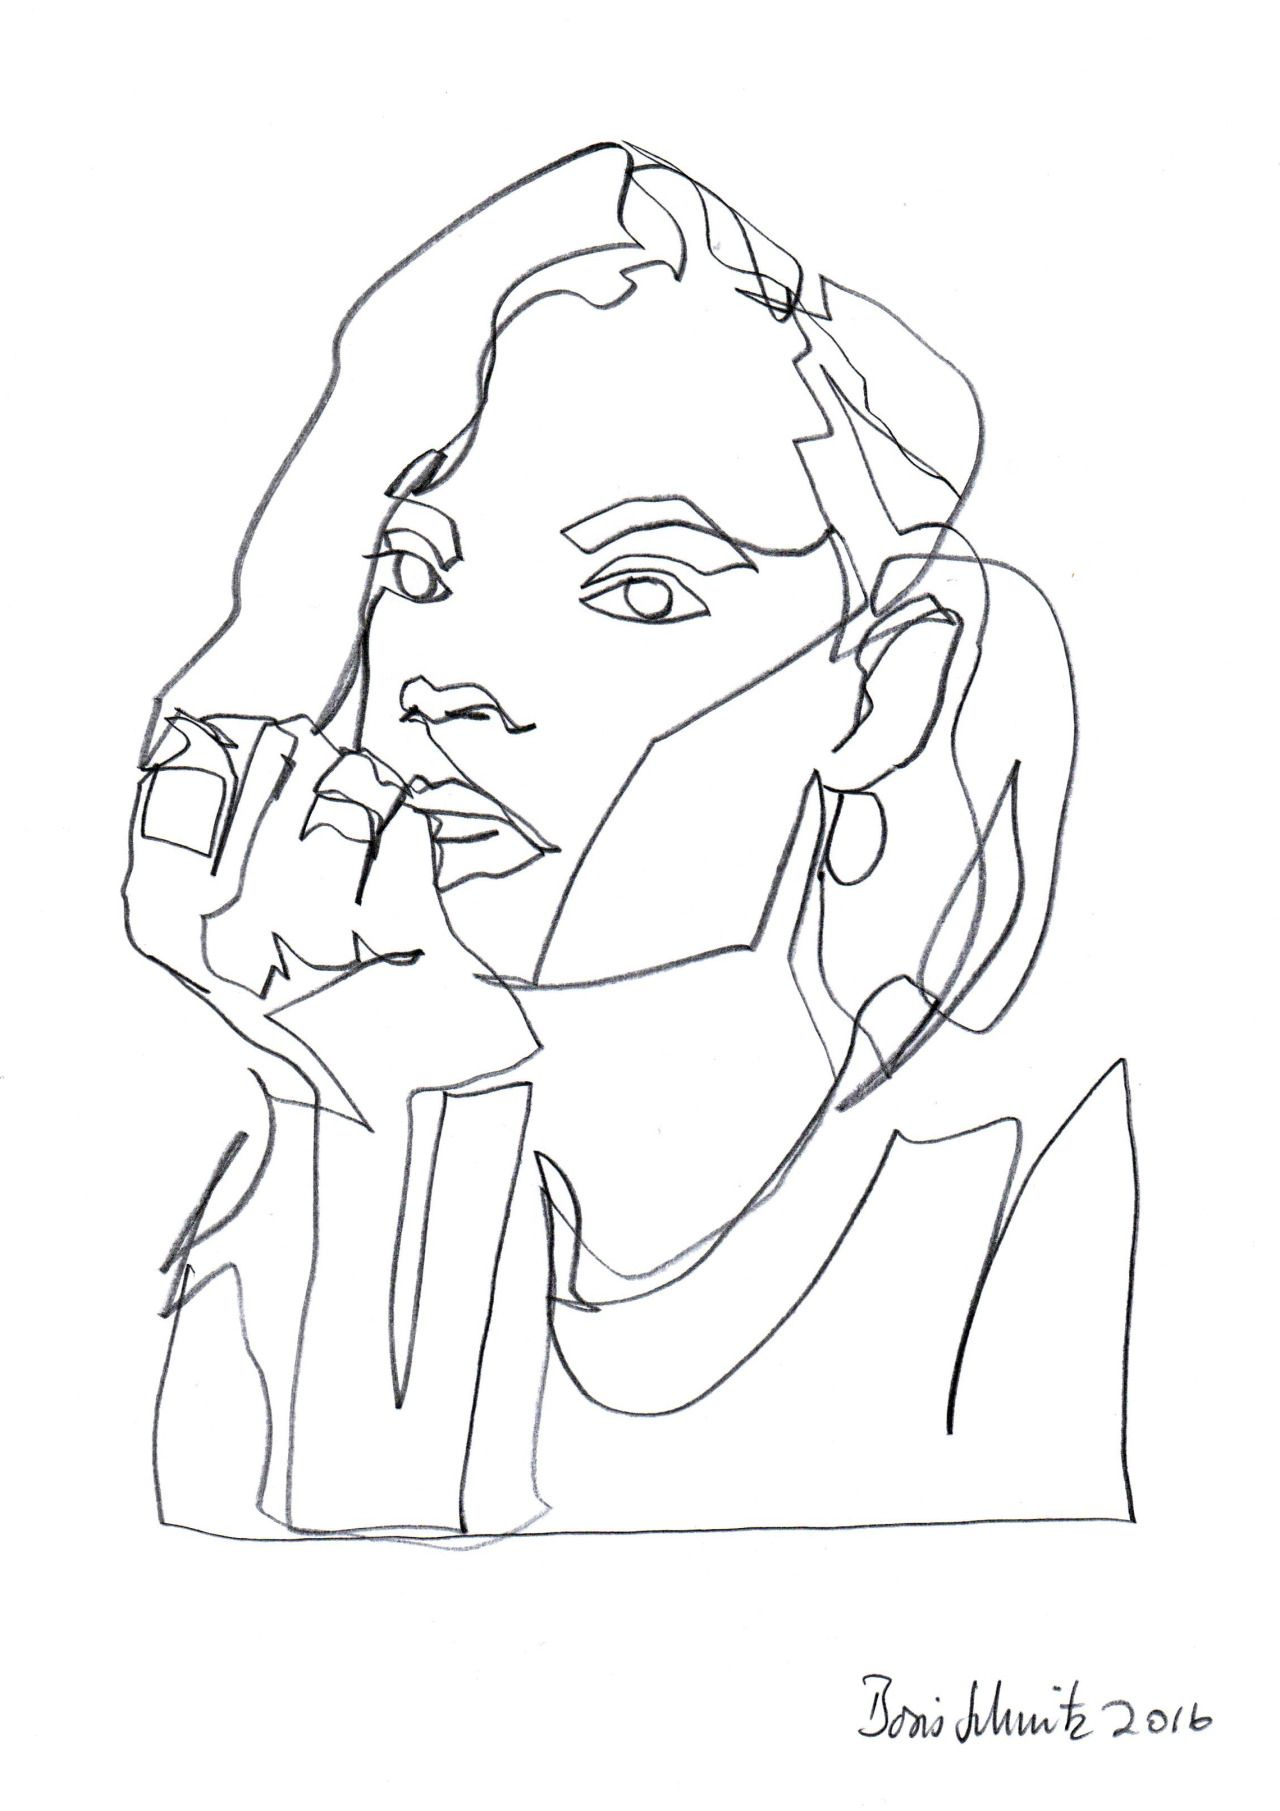 Continuous line drawing by Boris Schmitz Week 1